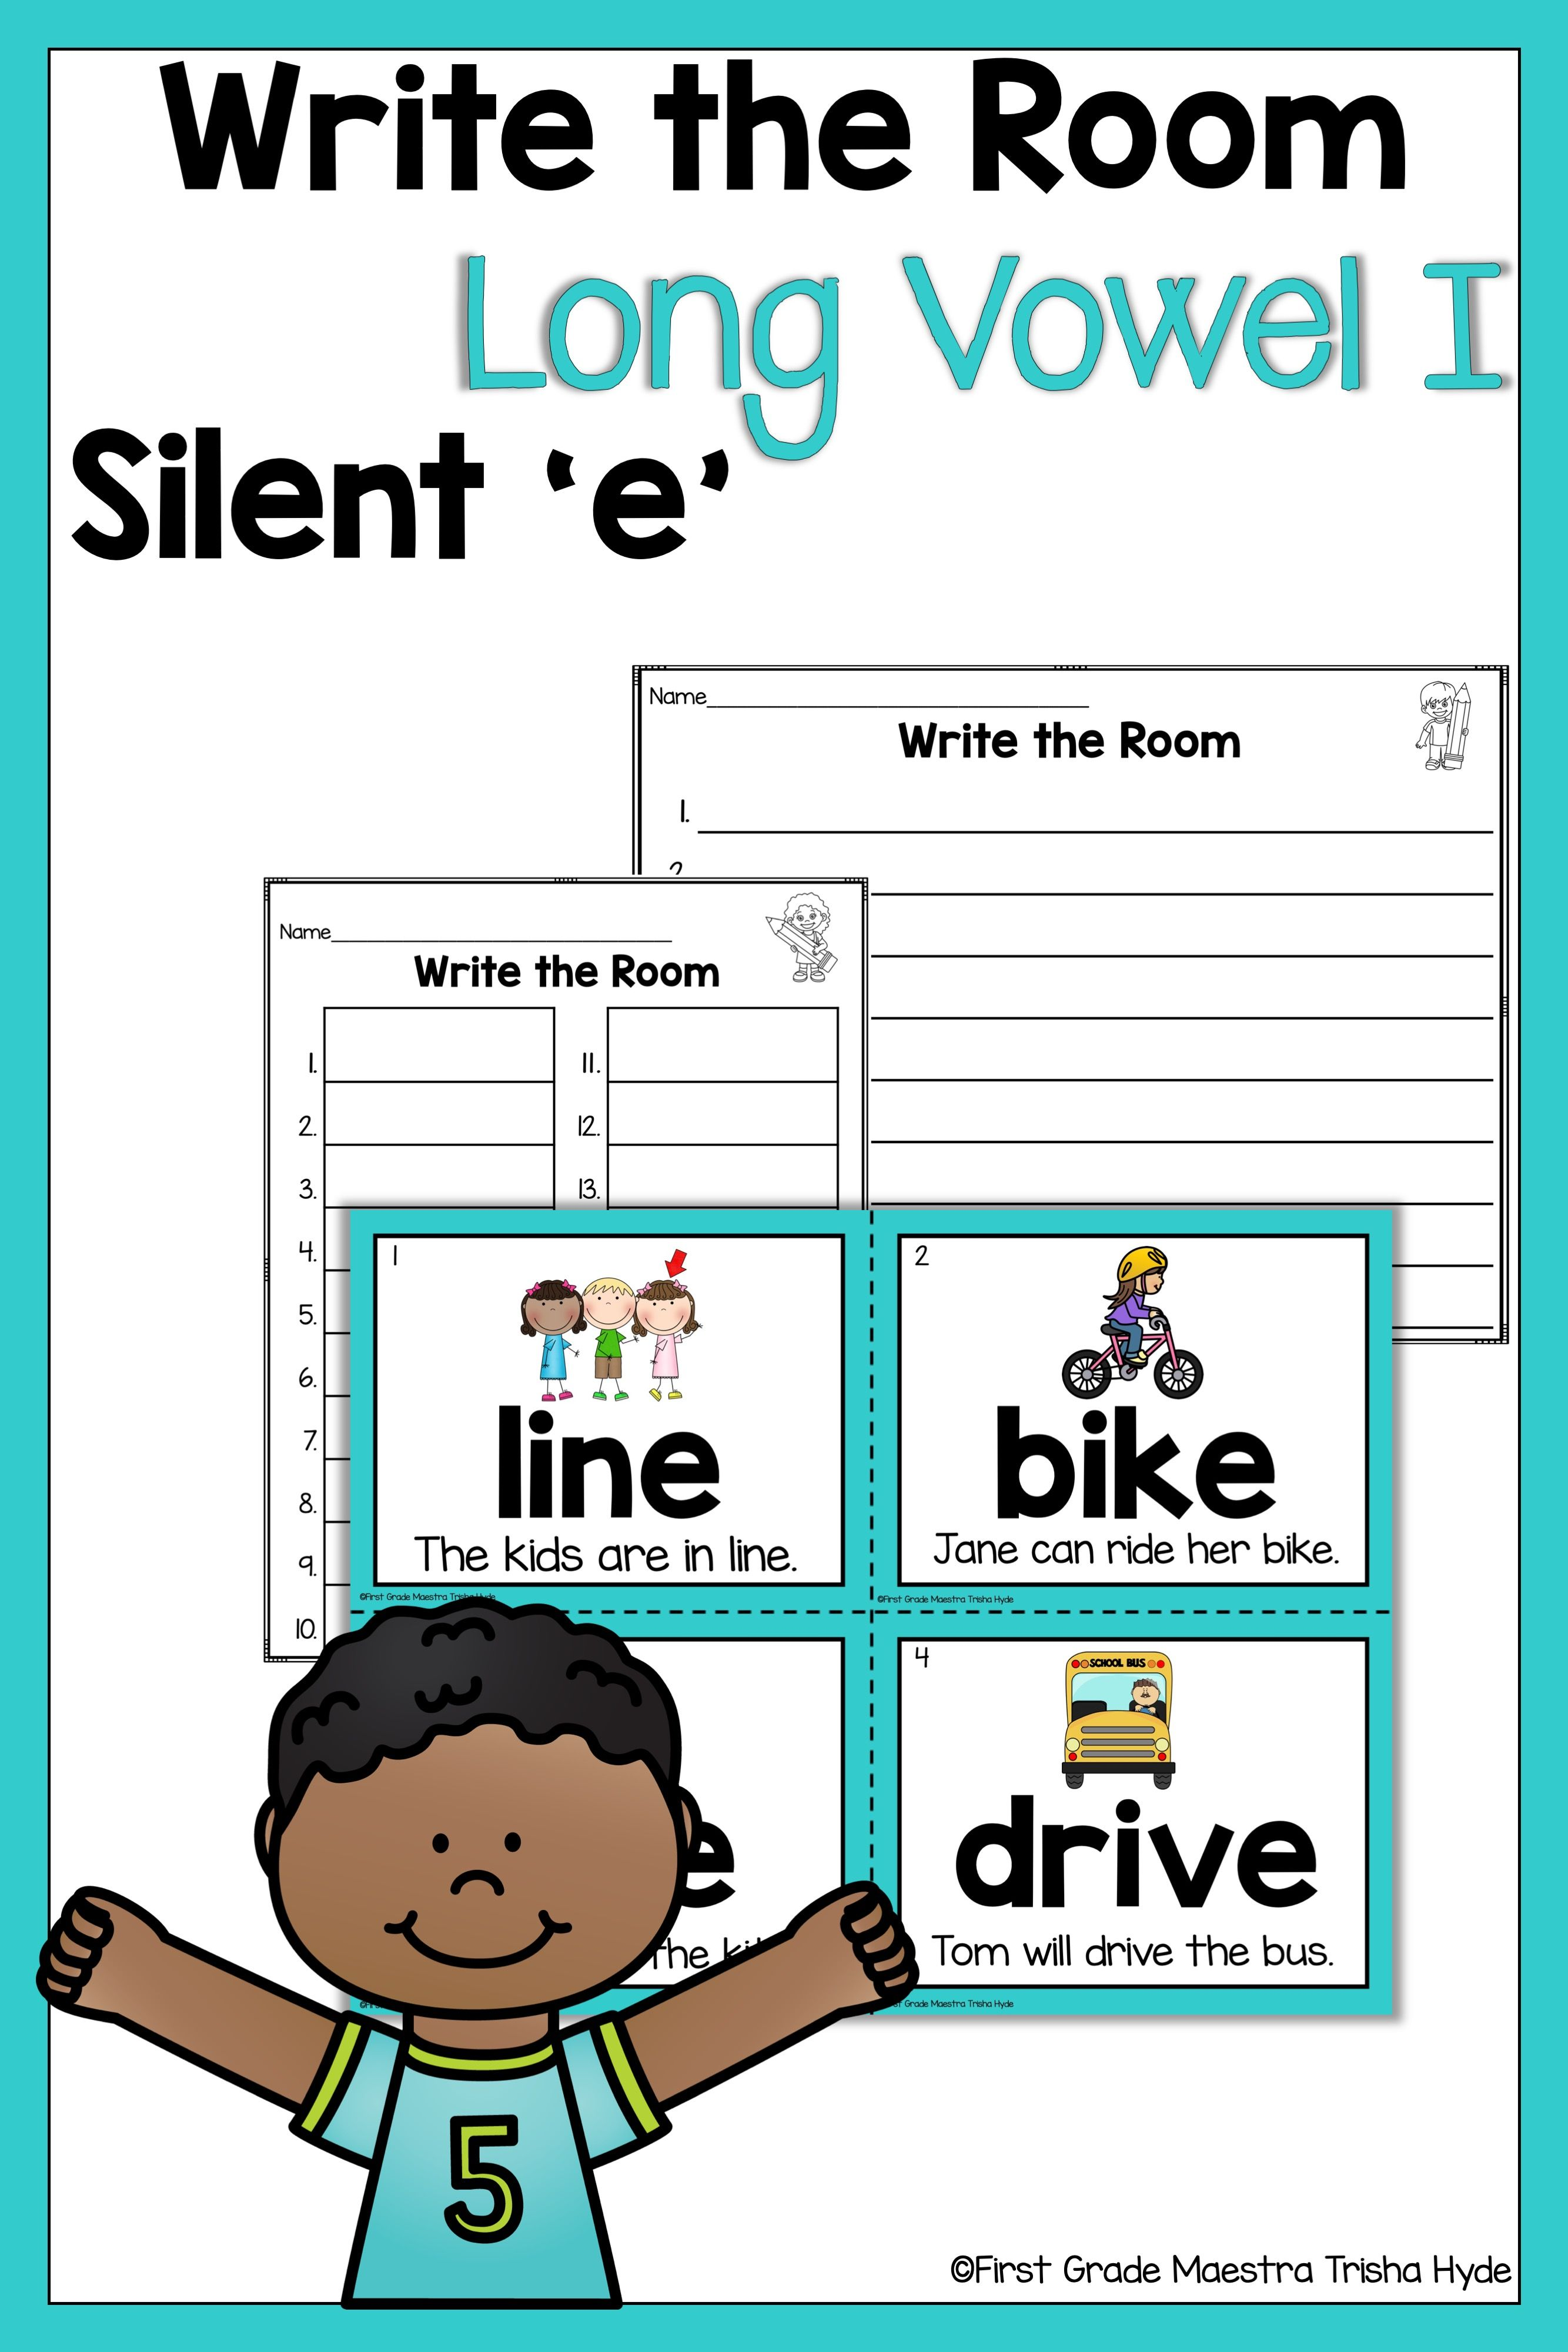 hight resolution of Long Vowel With Silent E Worksheets   Printable Worksheets and Activities  for Teachers